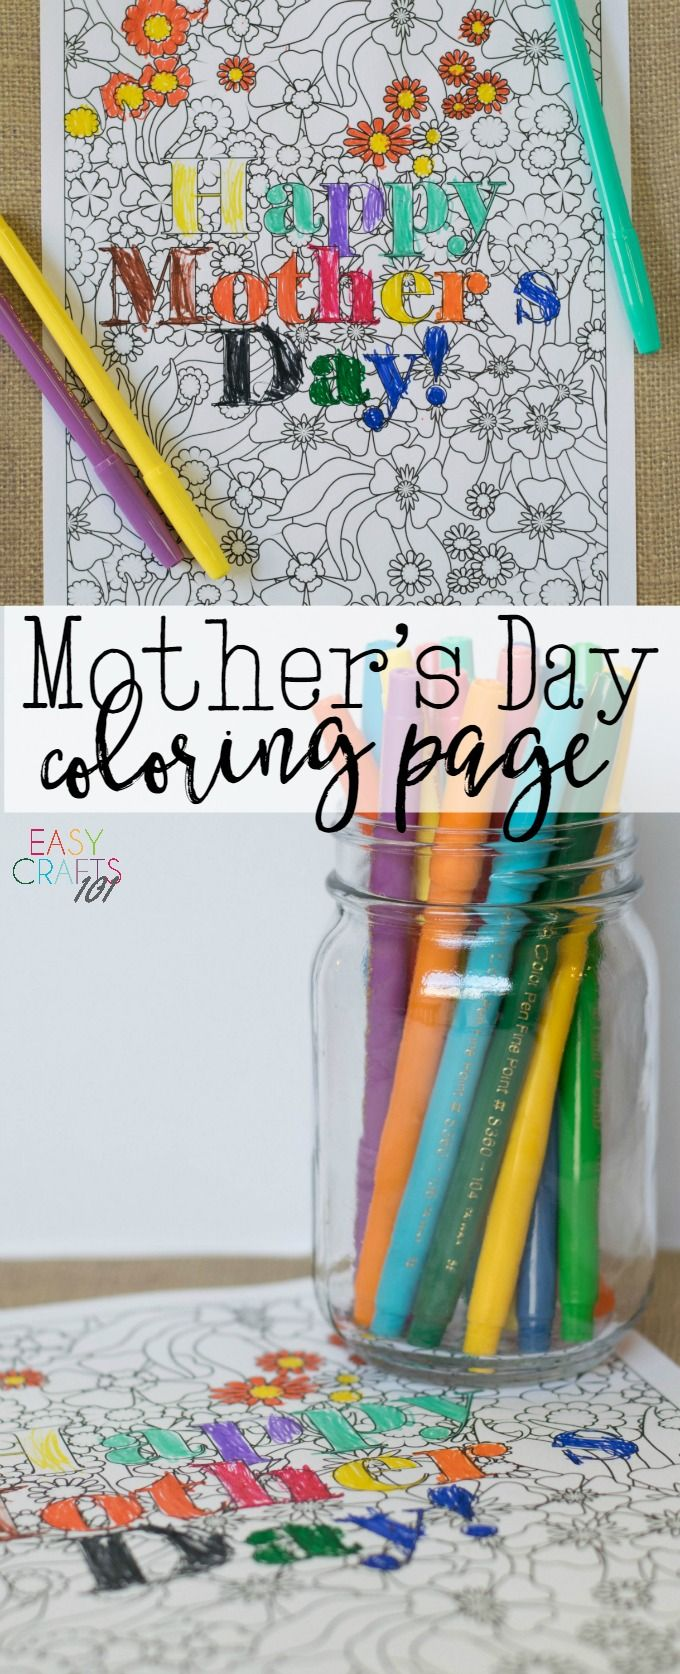 Mothers day coloring sheets for sunday school - Get Your Free Mother S Day Coloring Page Here Kids Will Love Coloring